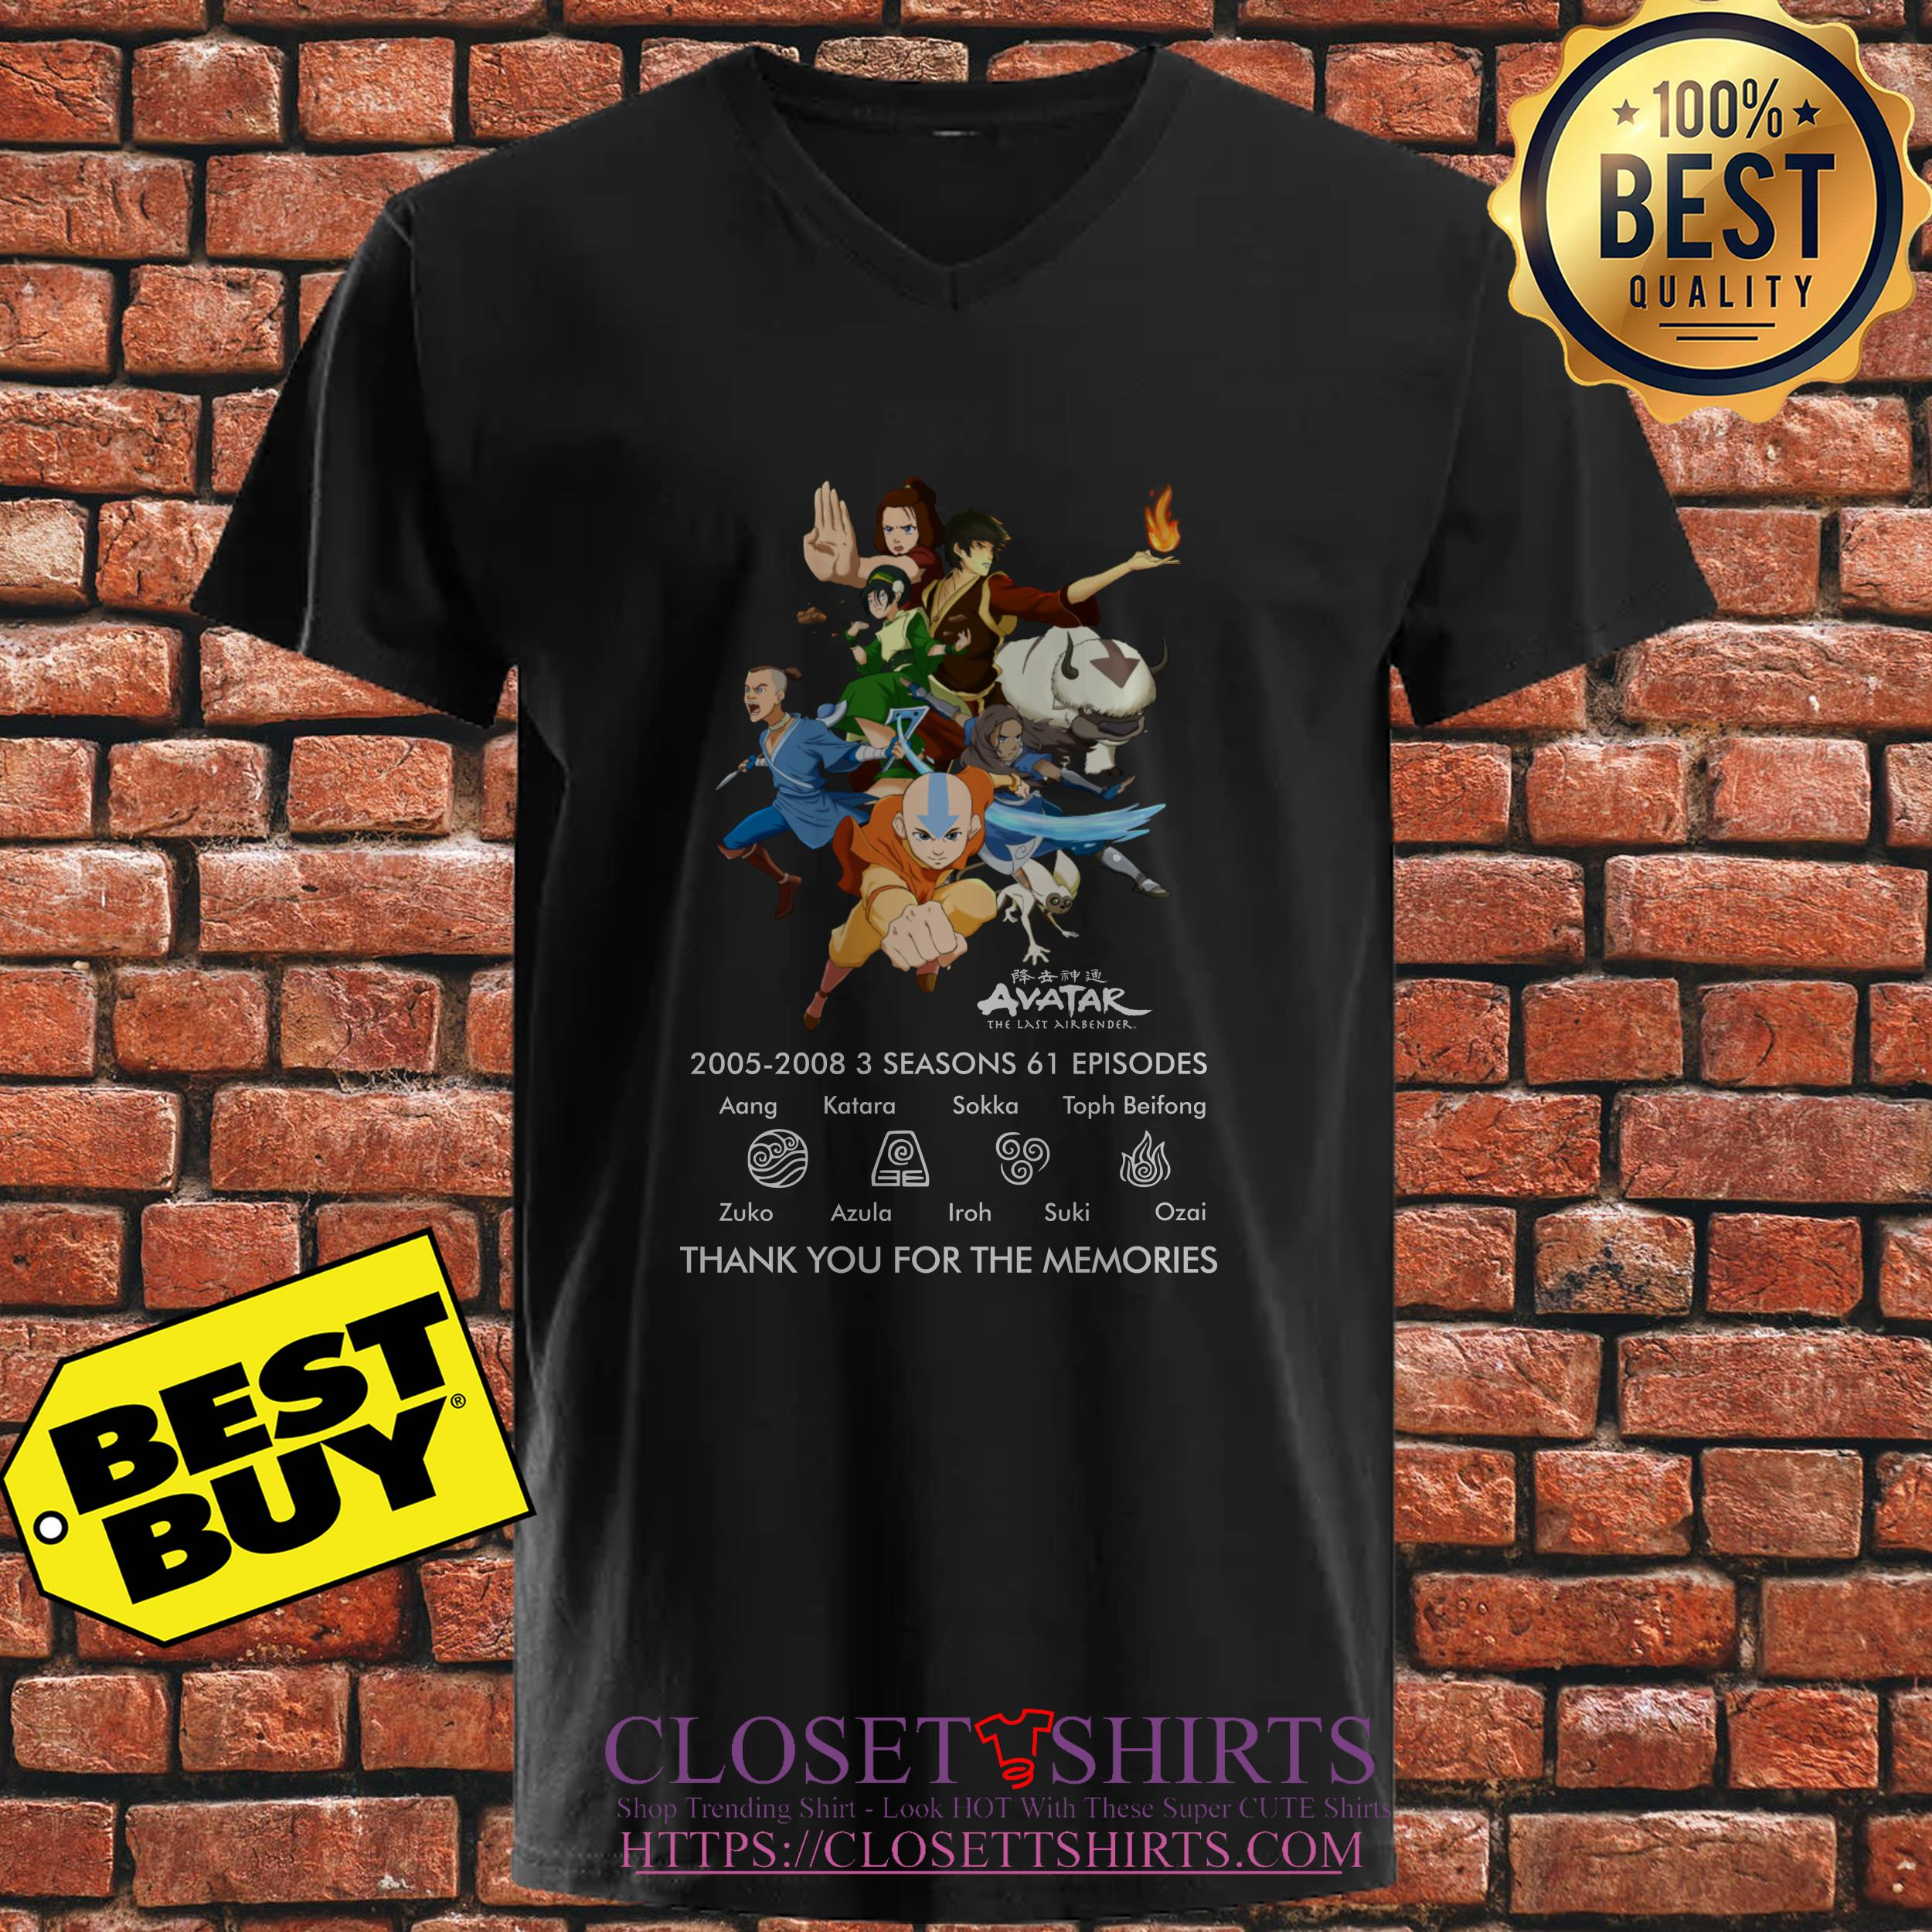 Avatar The Last Airbender 2005 2008 3 Thank You For The Memories ladies tee